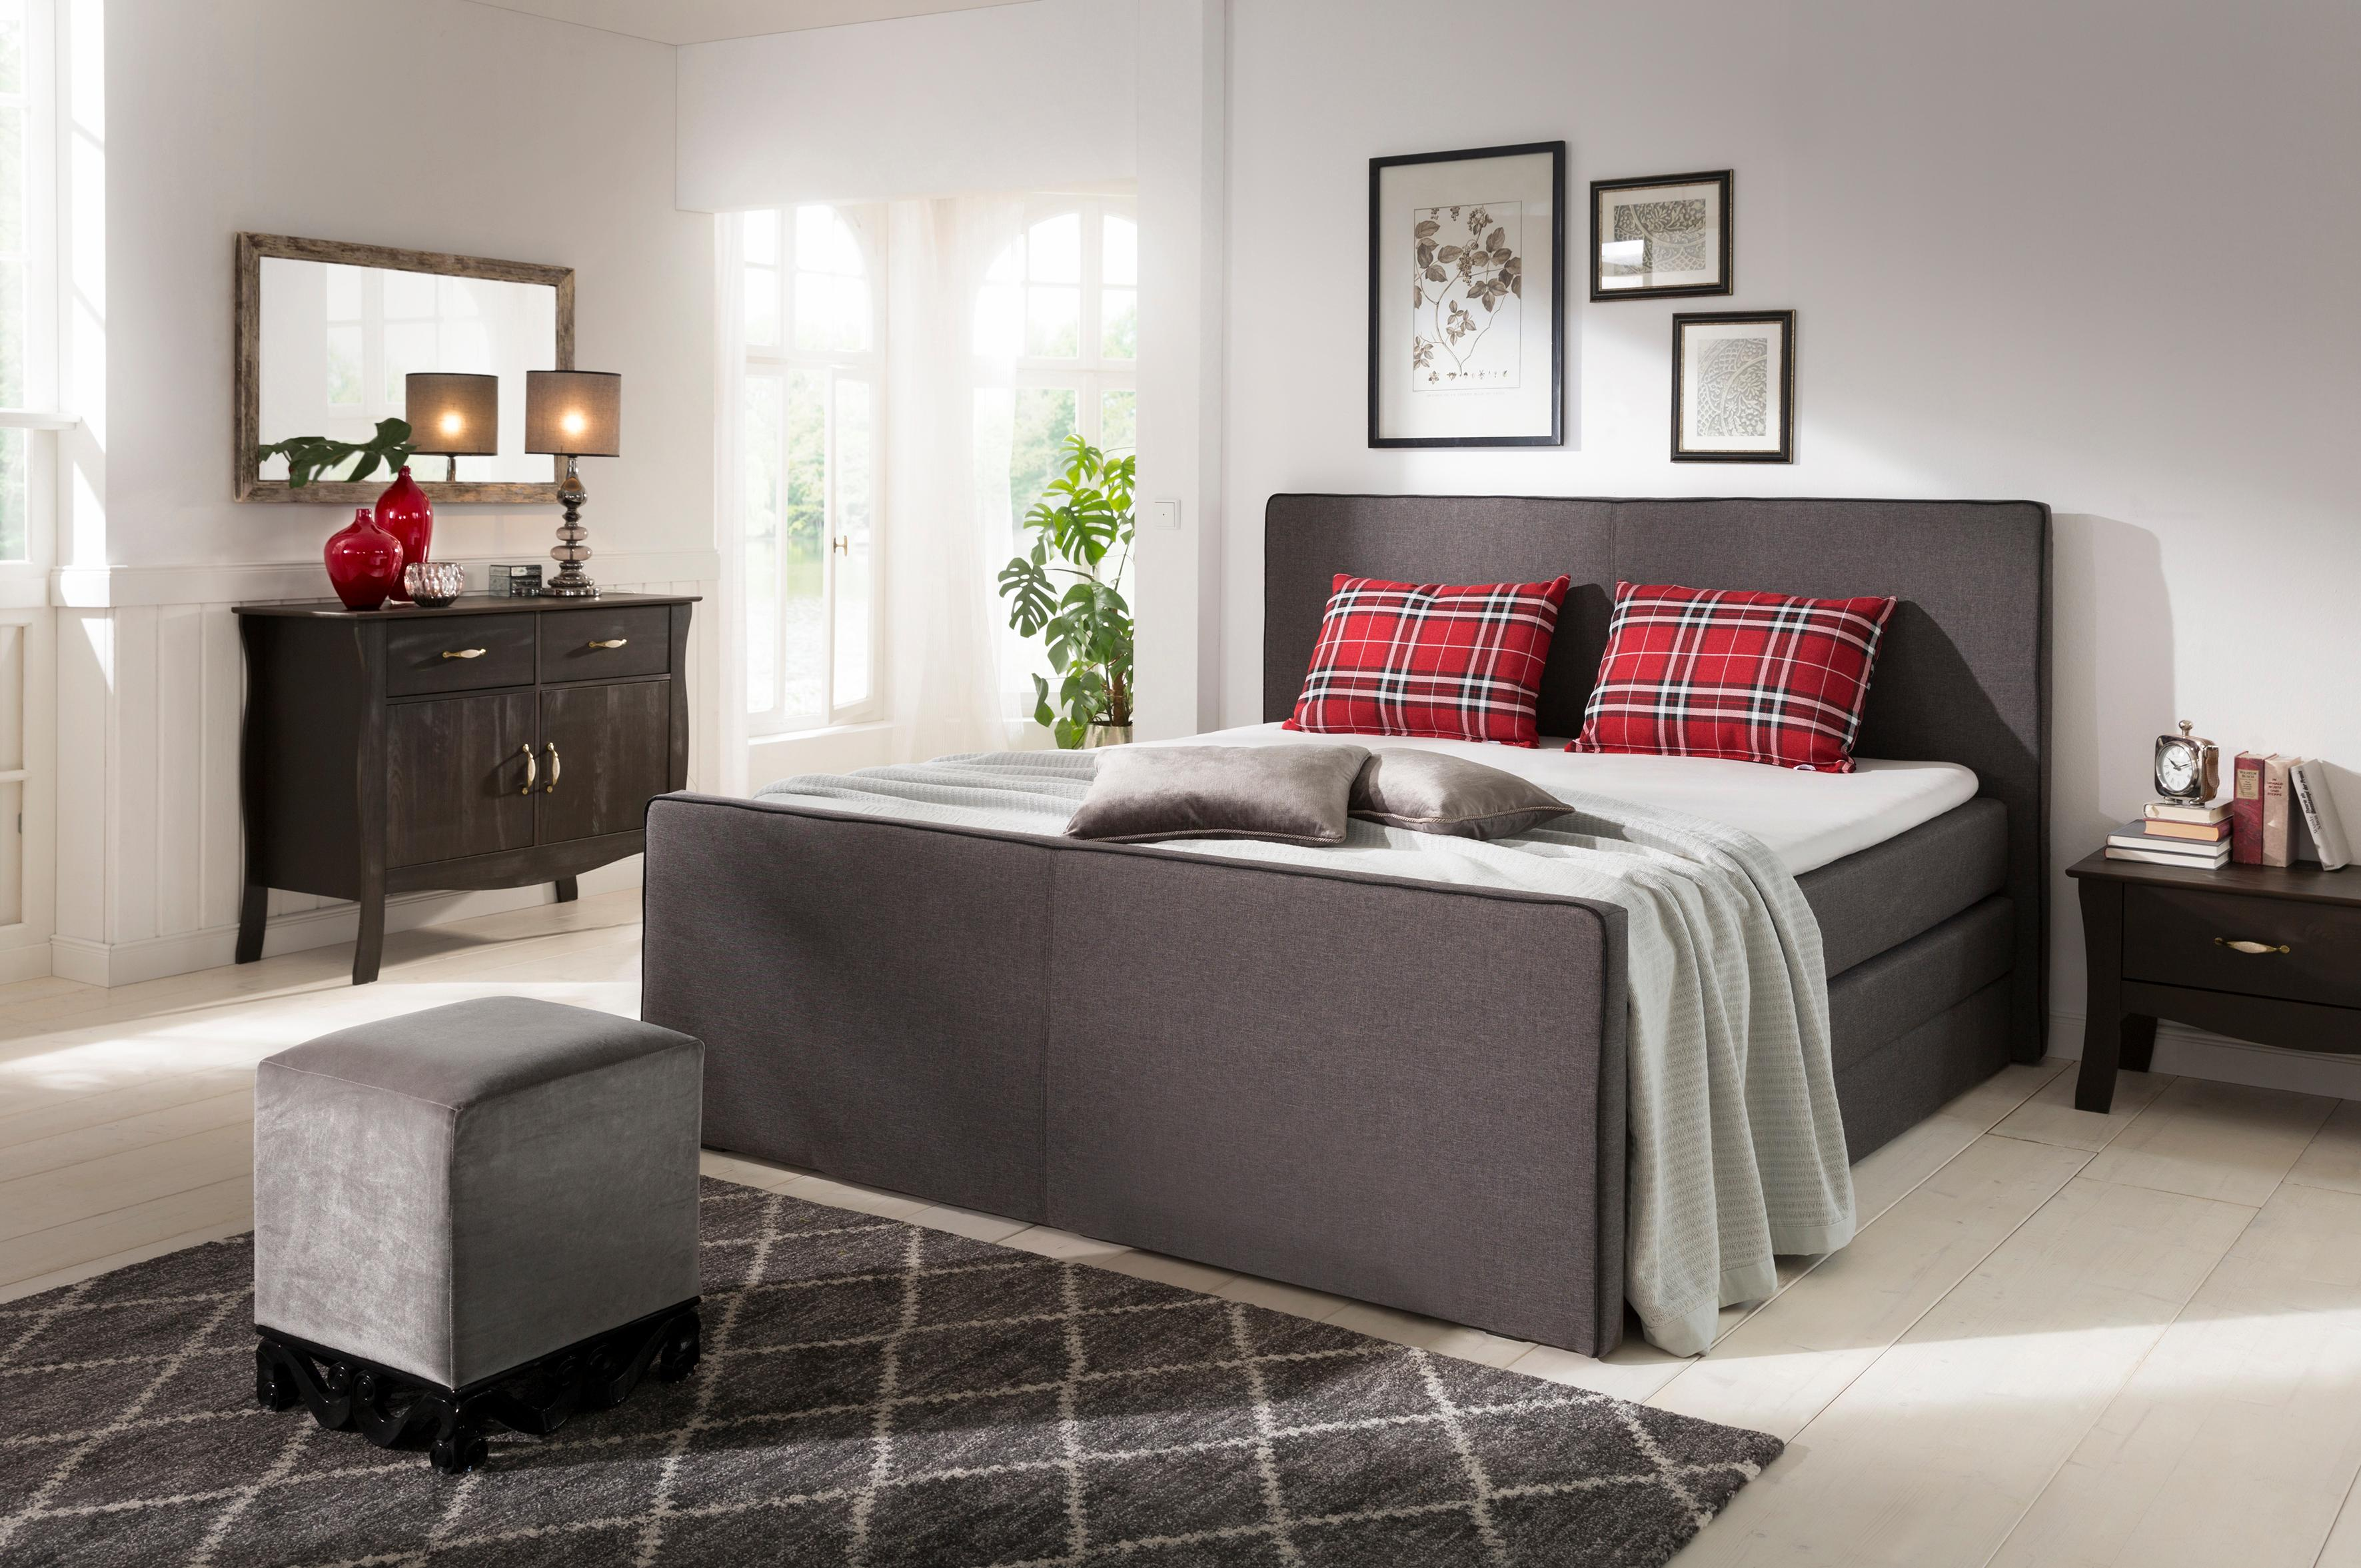 Home affaire Boxspringbett Memphis mit Bettkasten und Topper